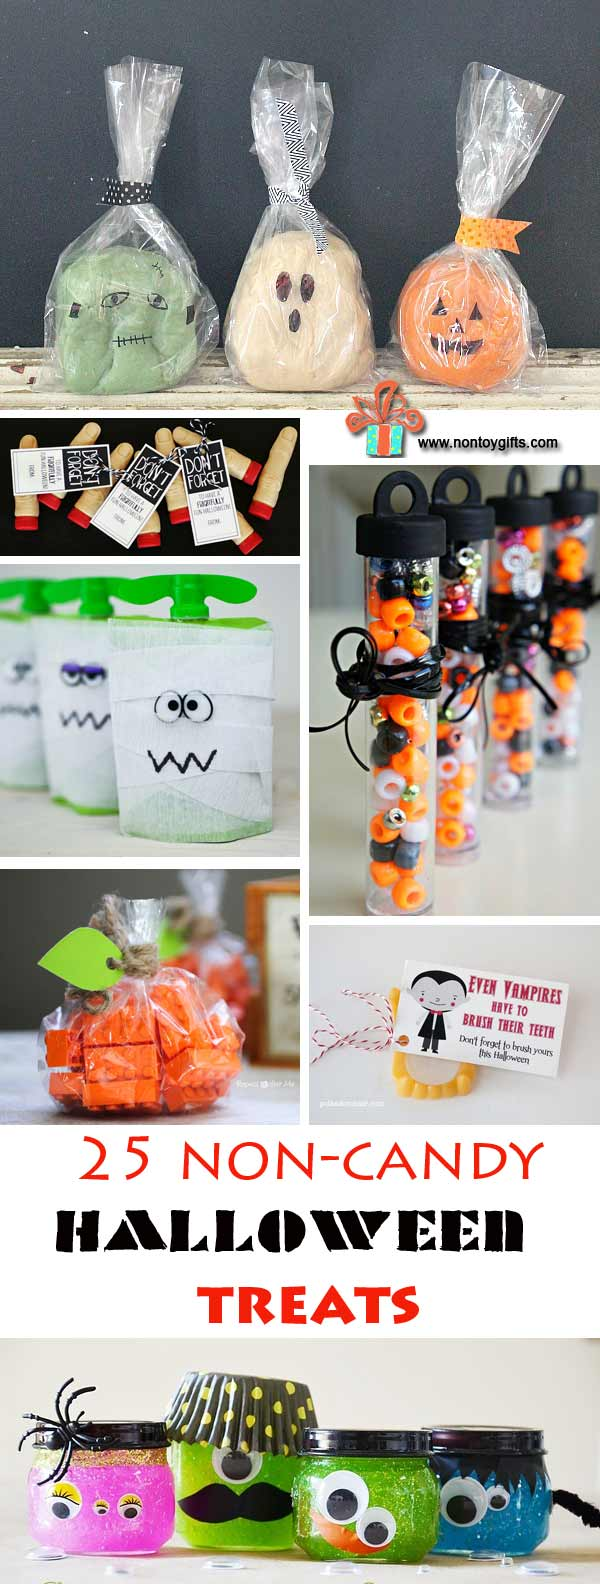 25 Non-Candy Halloween treats to make for kids. Classroom Halloween treats | at Non Toy Gifts